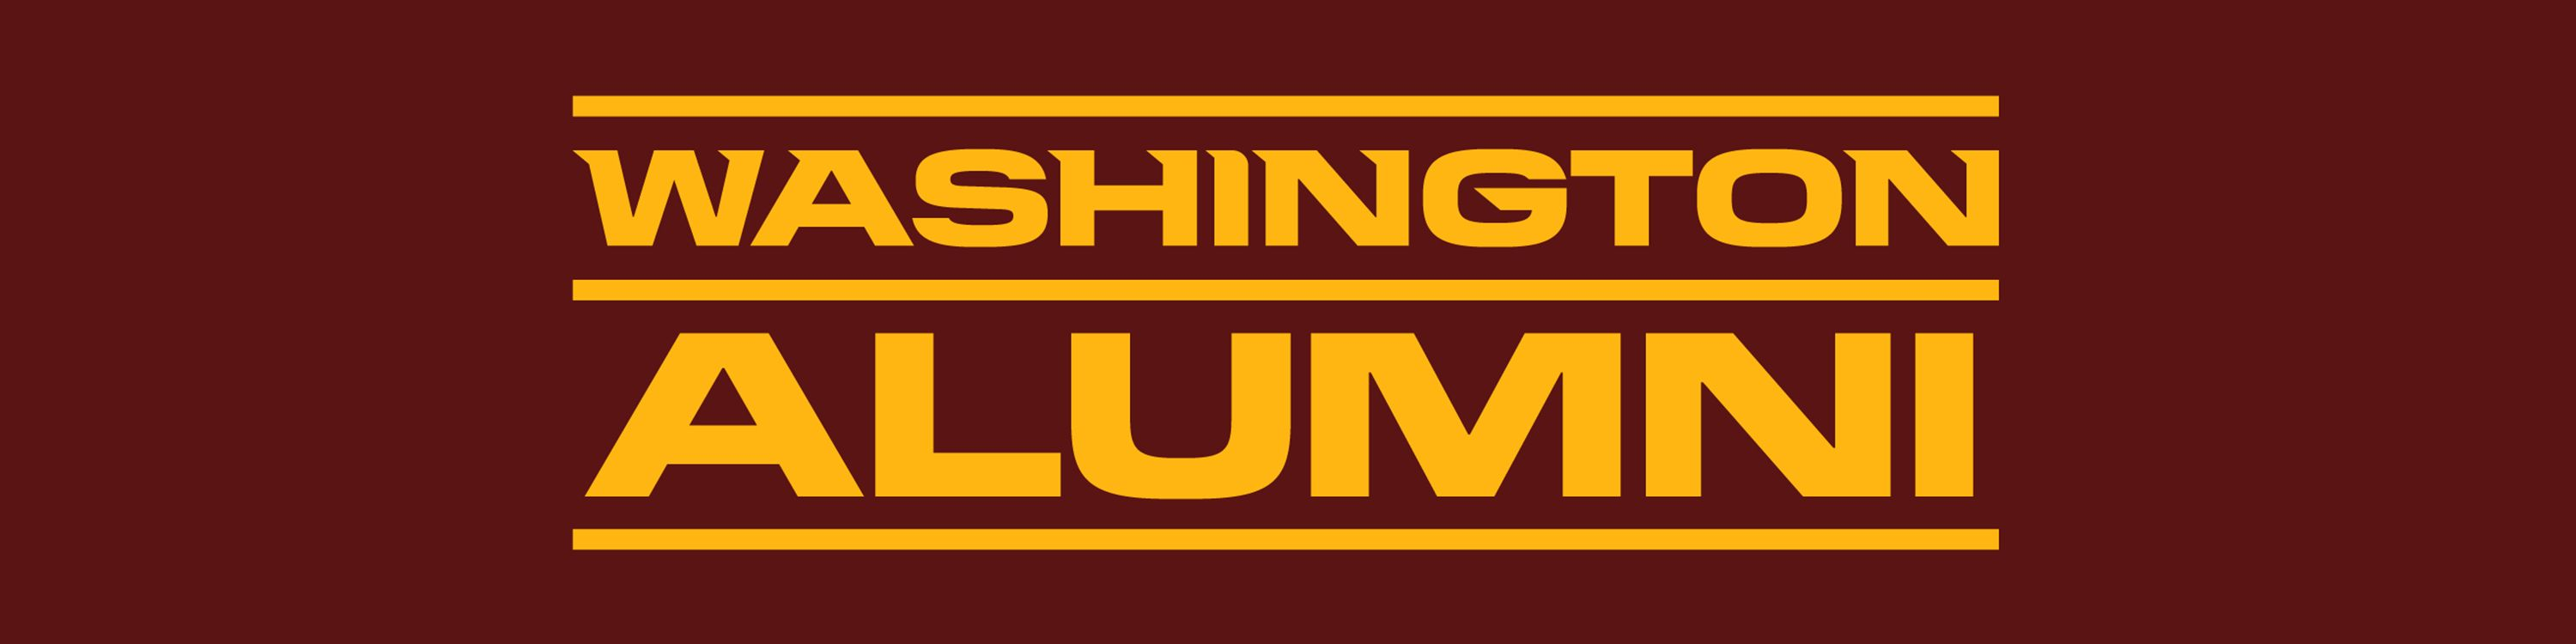 washington_alumni_header_3000x775